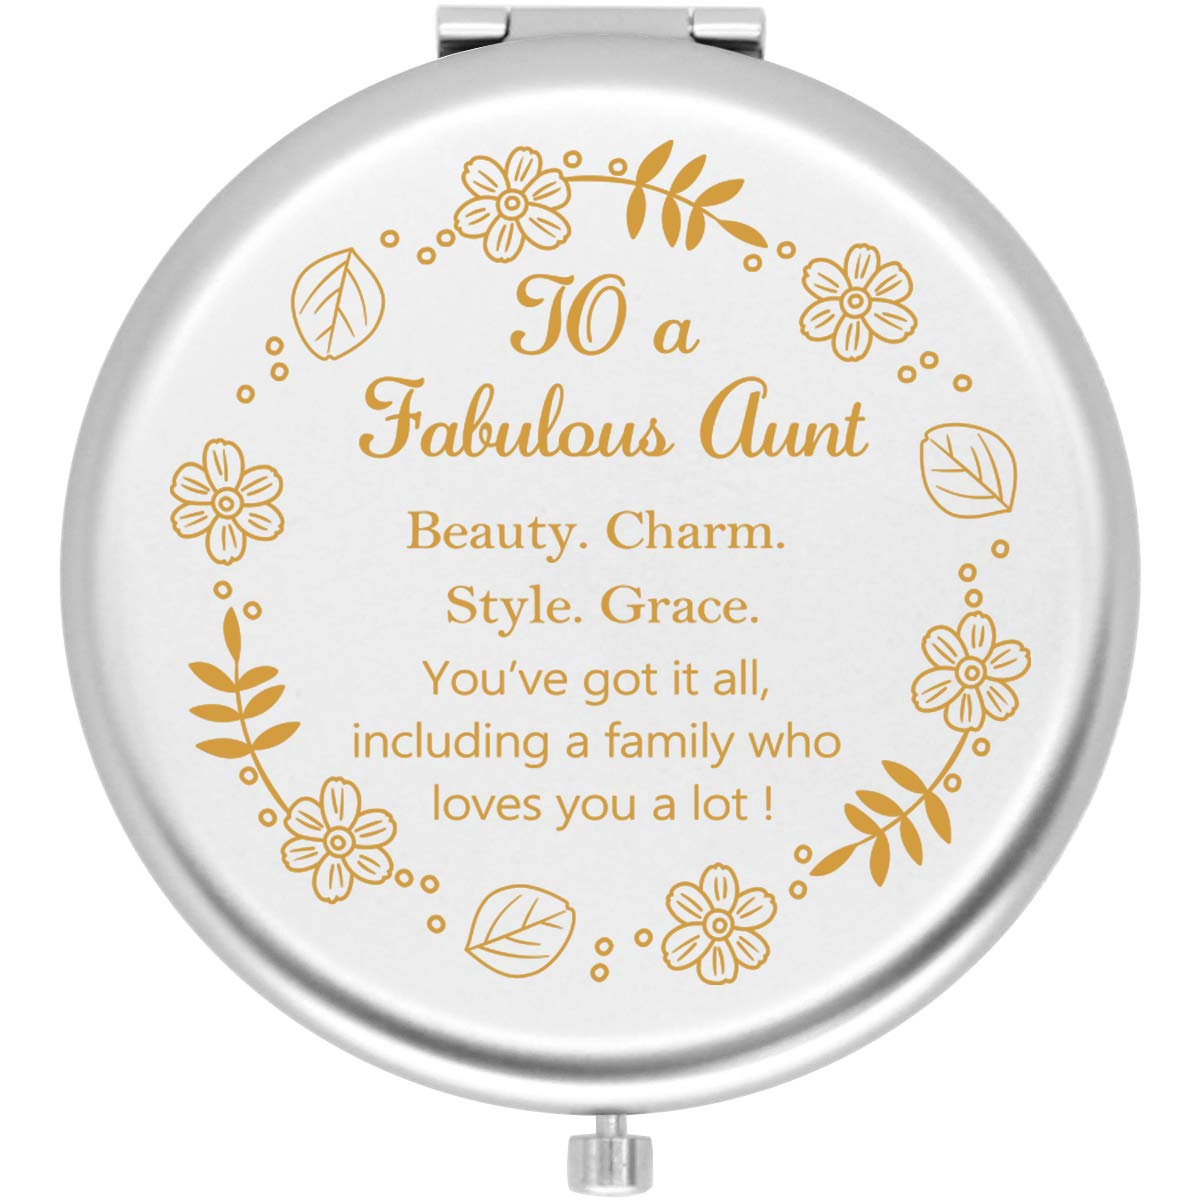 lowest price Onederful Aunt Gifts Travel Compact Pocket for Ranking TOP6 from Mirror